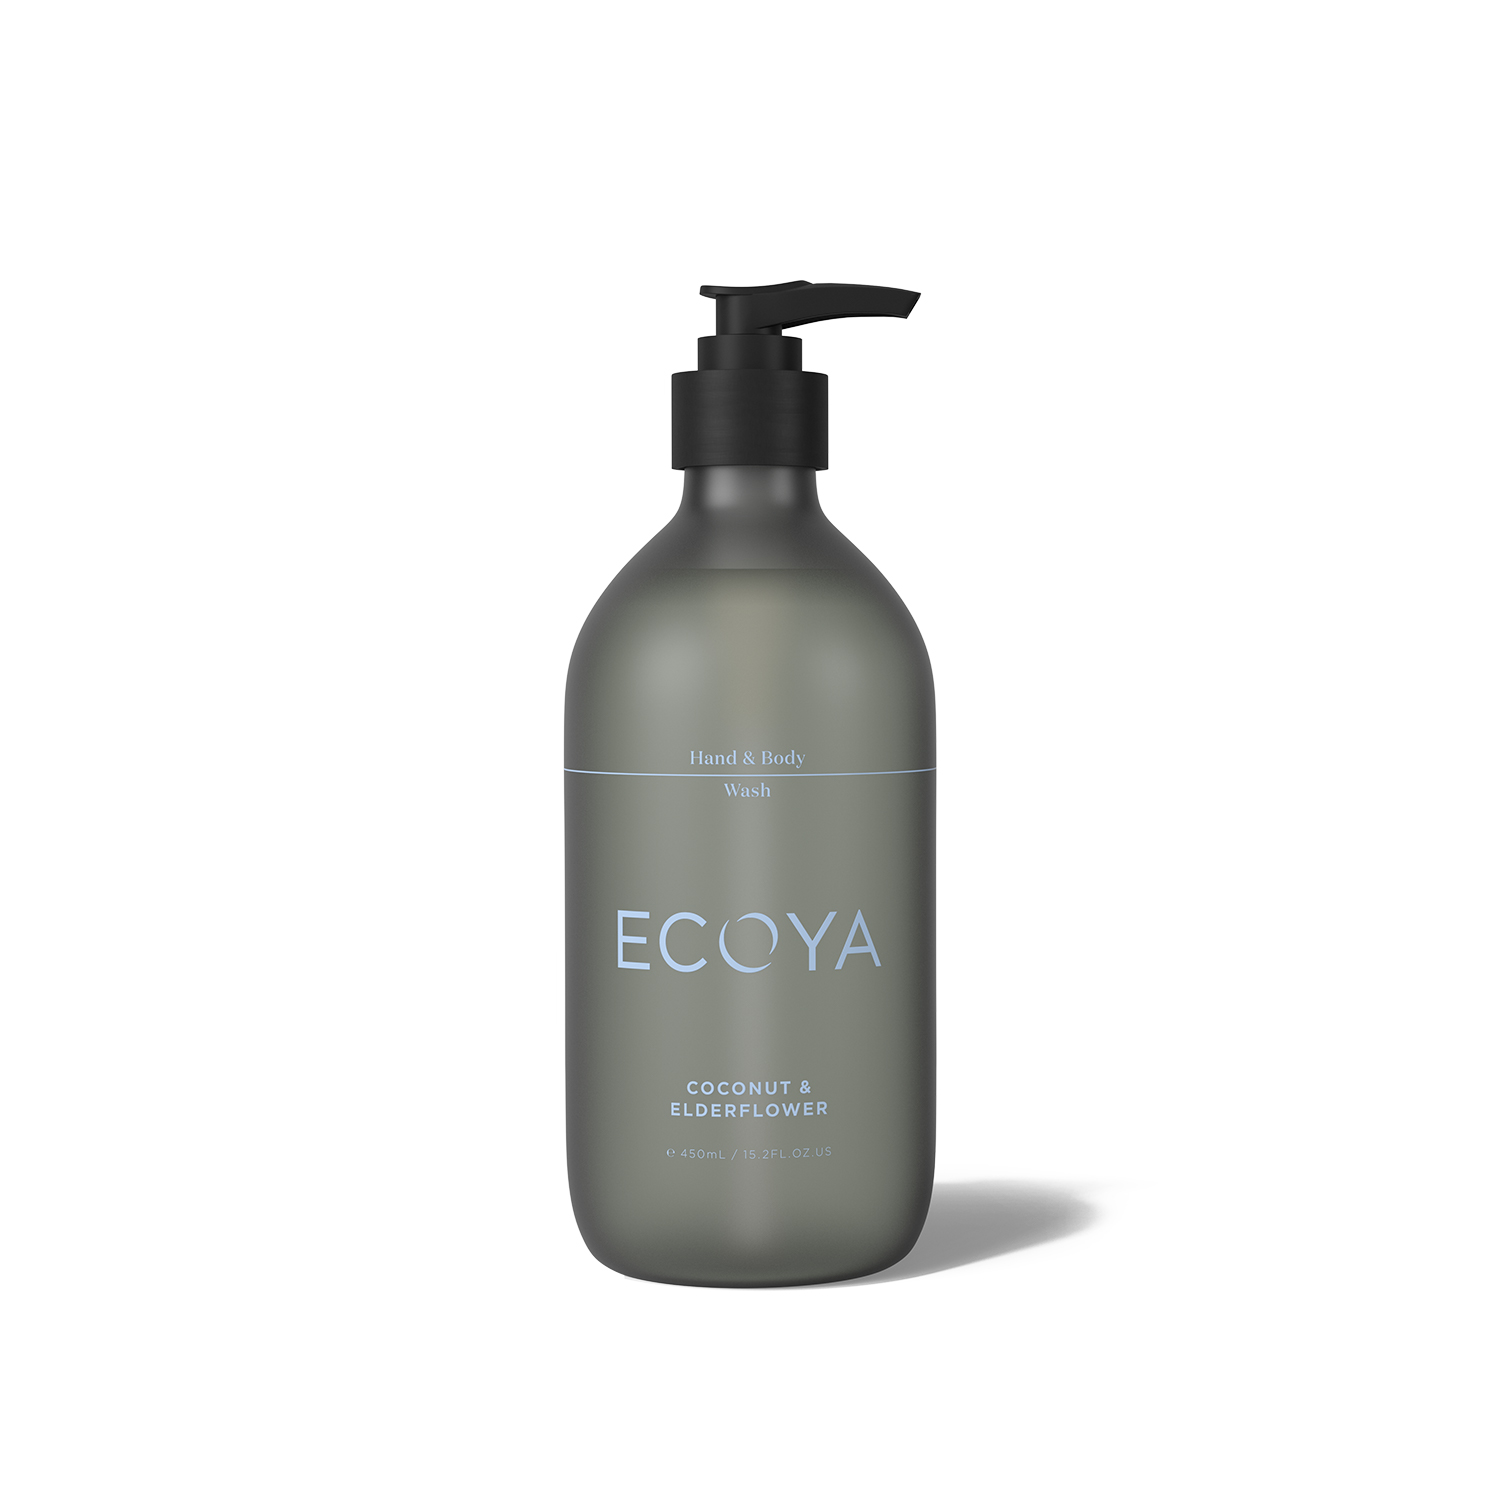 Ecoya Coconut and Elderflower Hand and Body Wash 15.8oz (450ml)